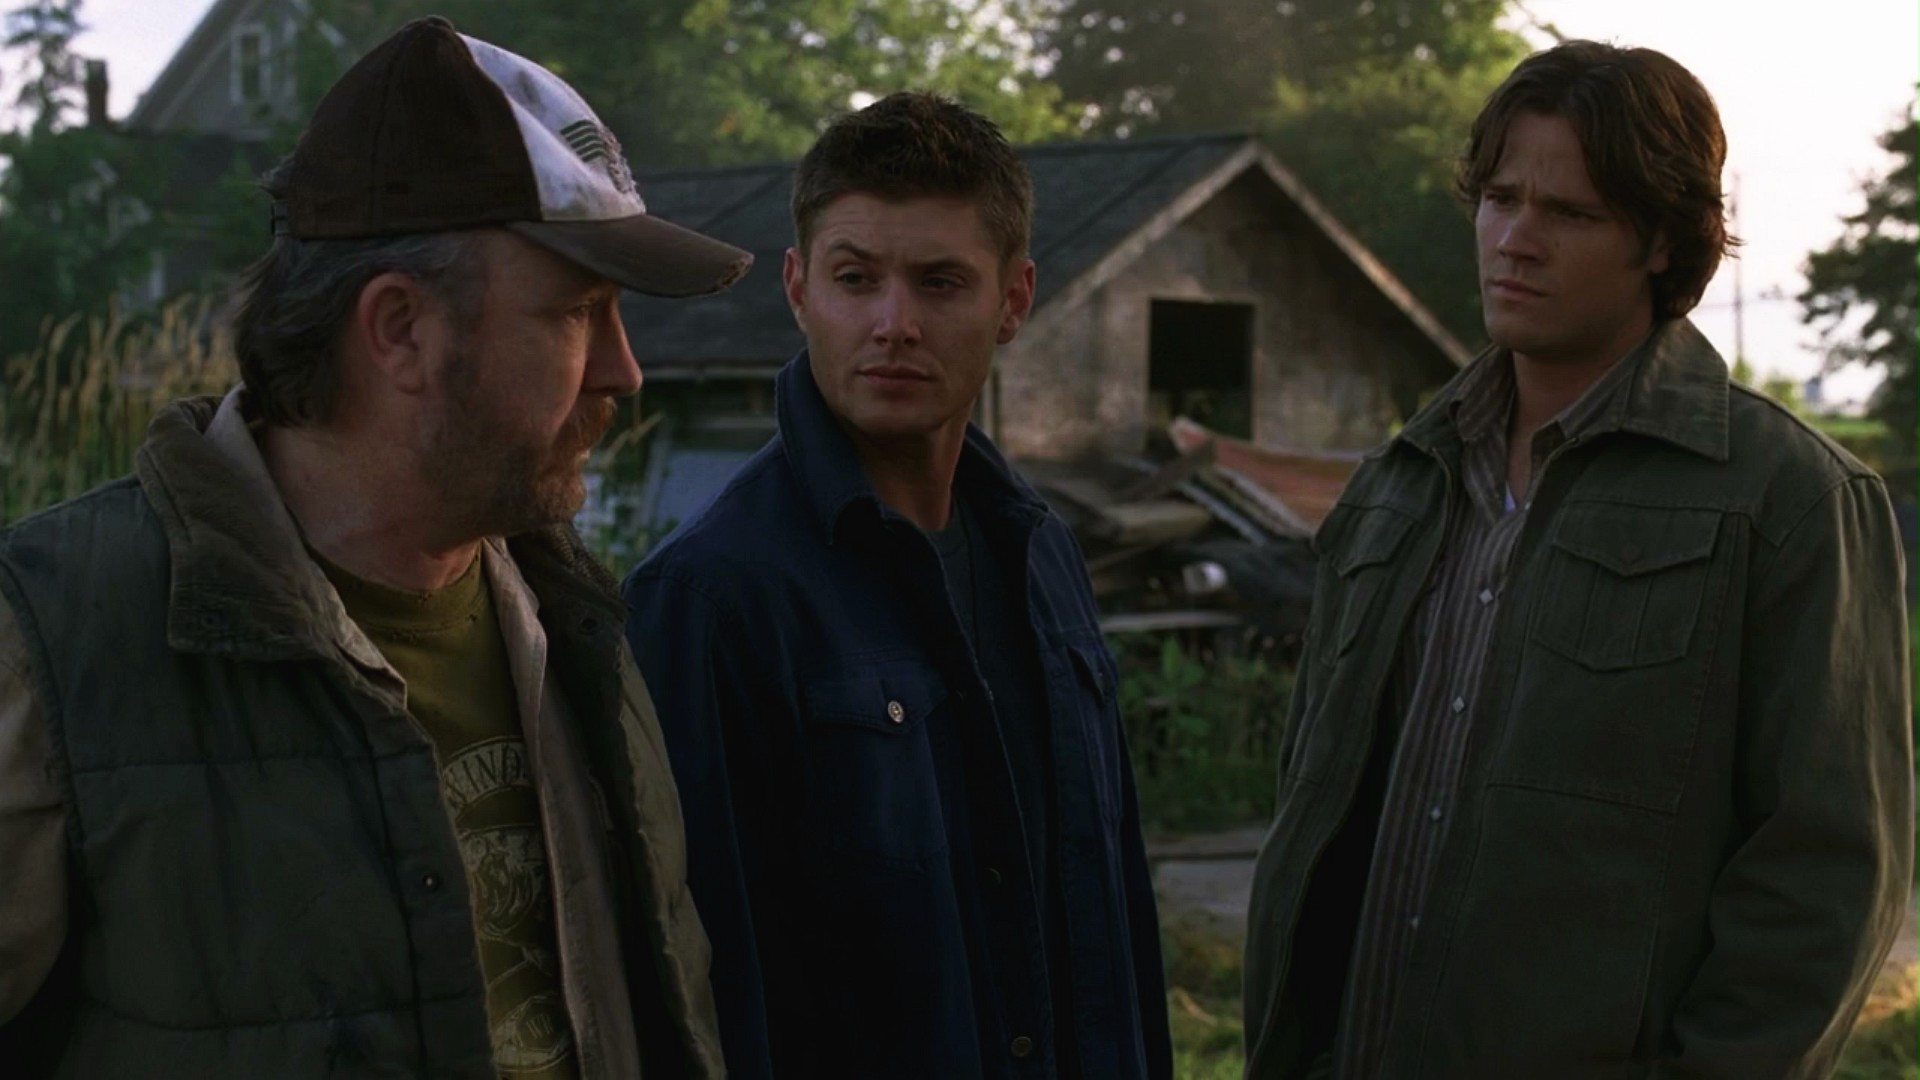 https://thewinchesterfamilybusiness.com/images/CaptionThis/SPN_03x01.jpg